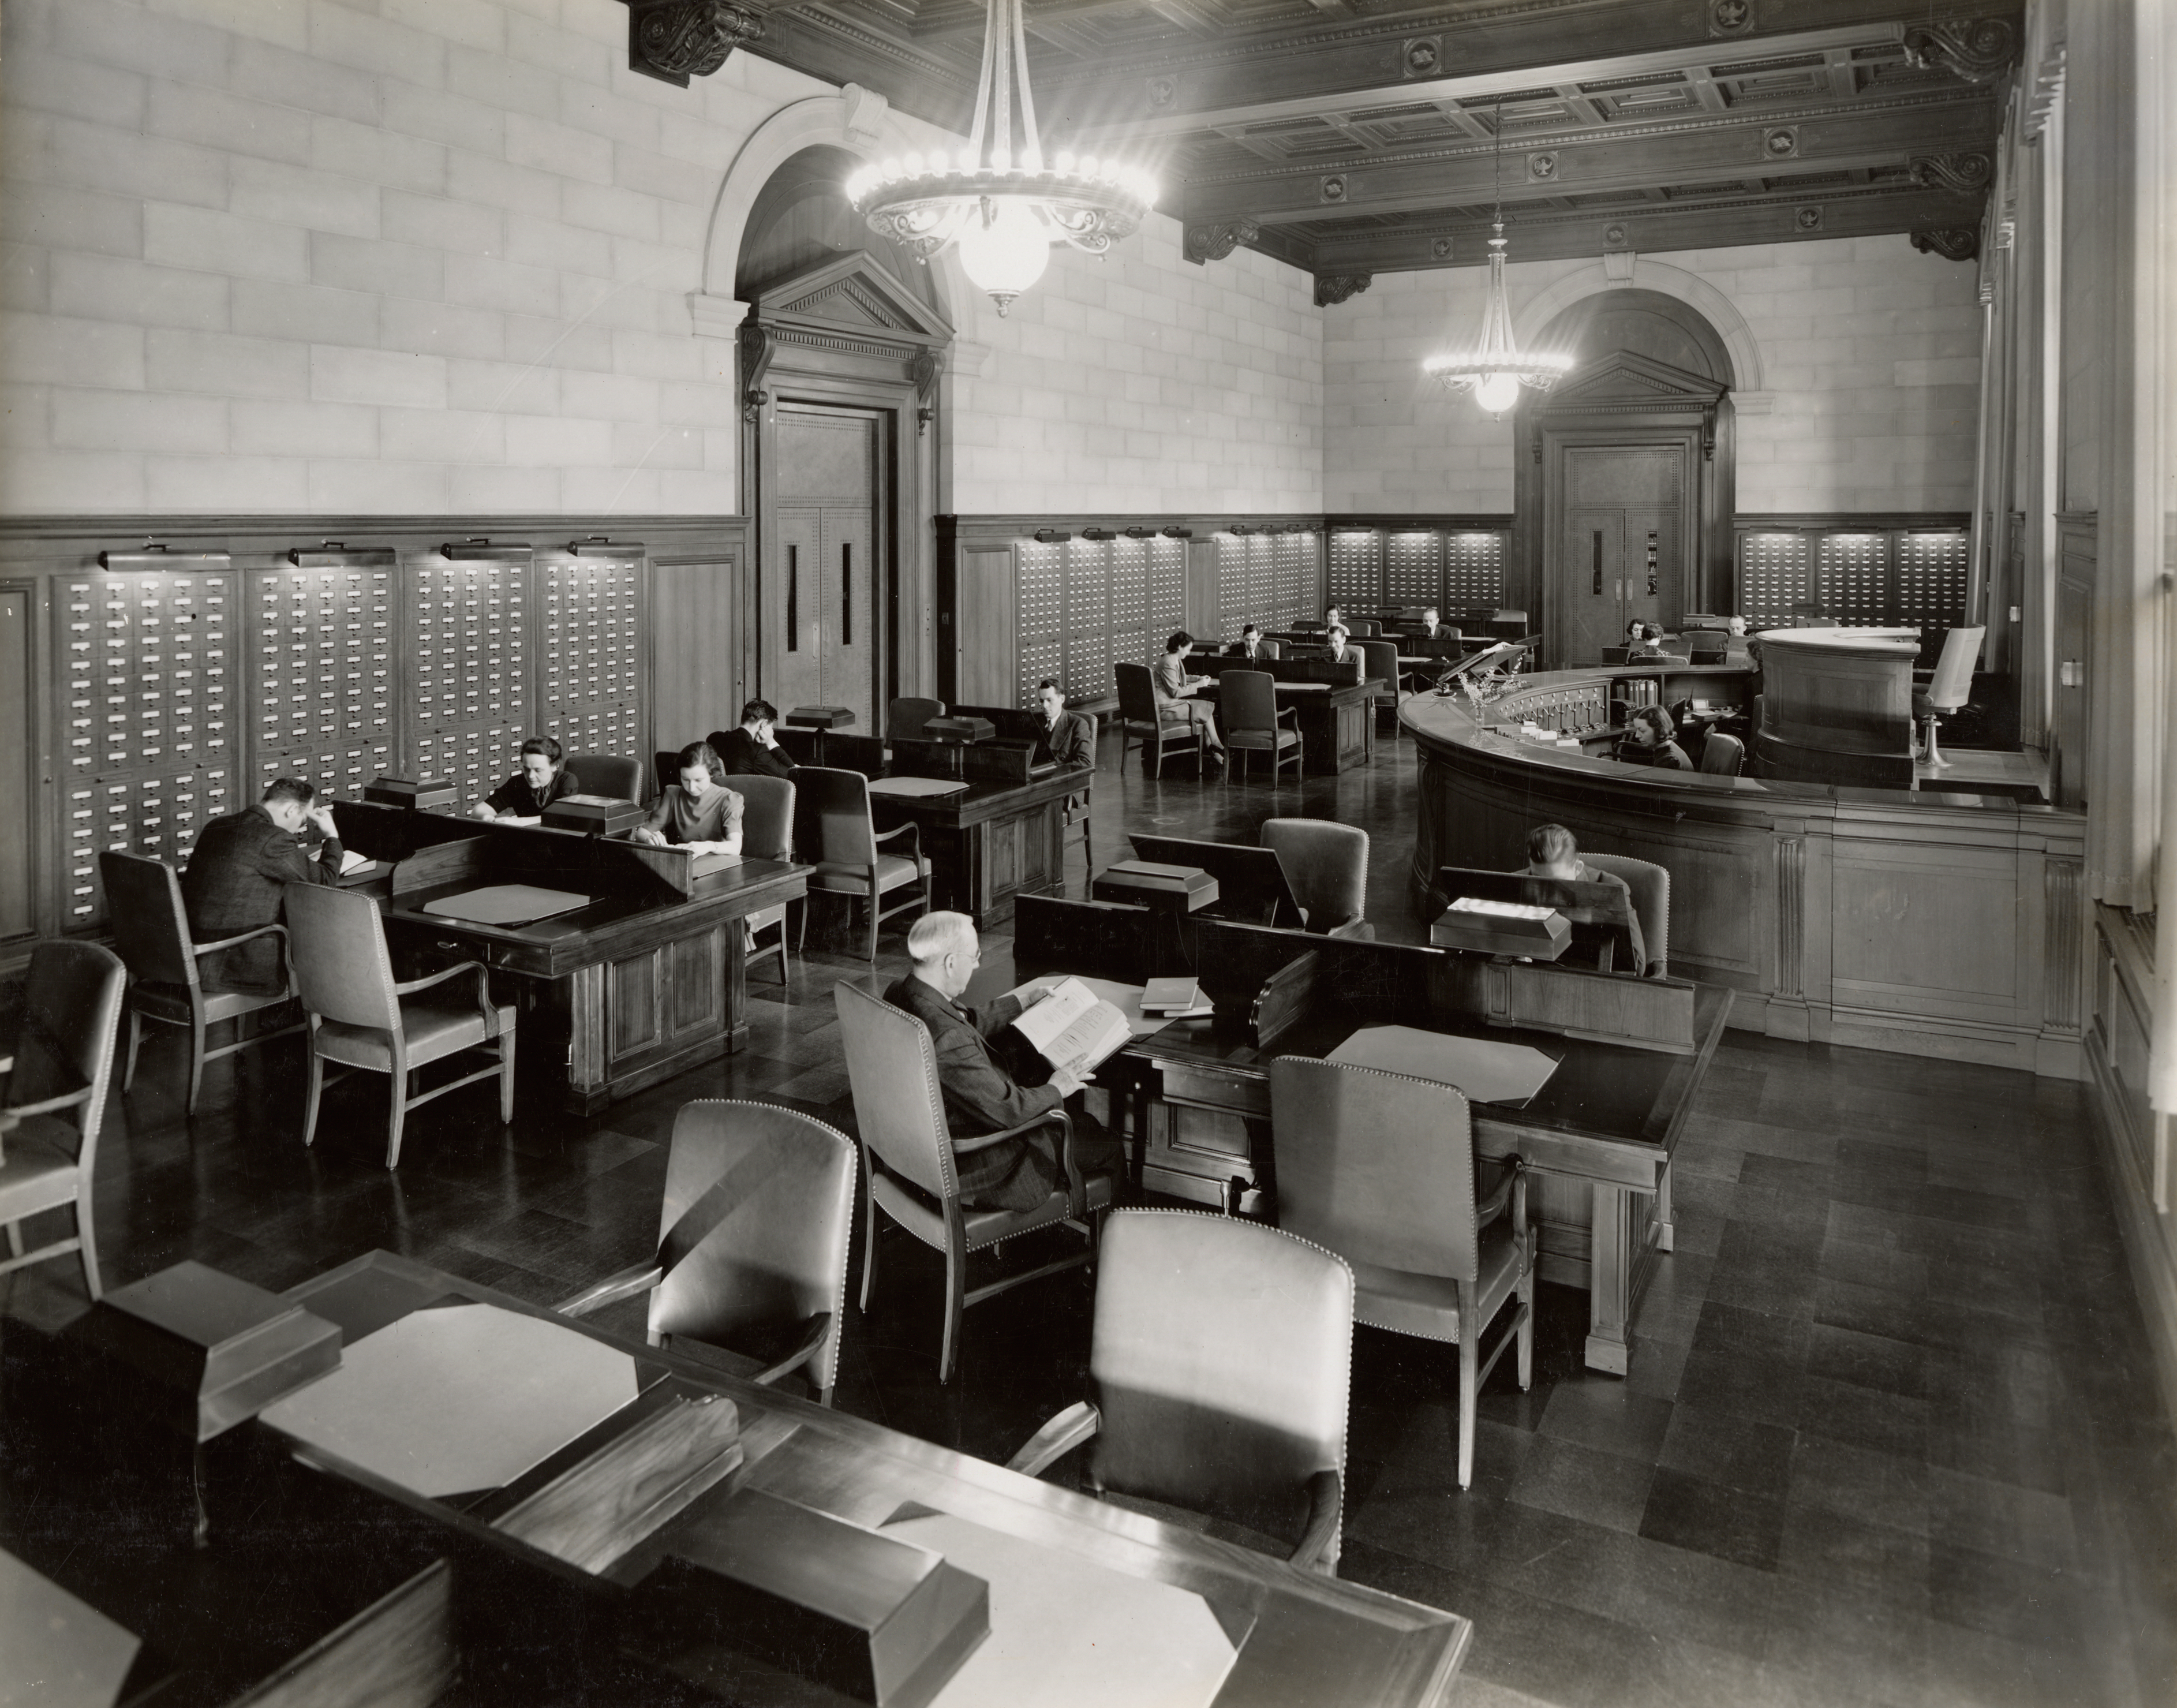 Central Research Room at National Archives Building in Washington DC